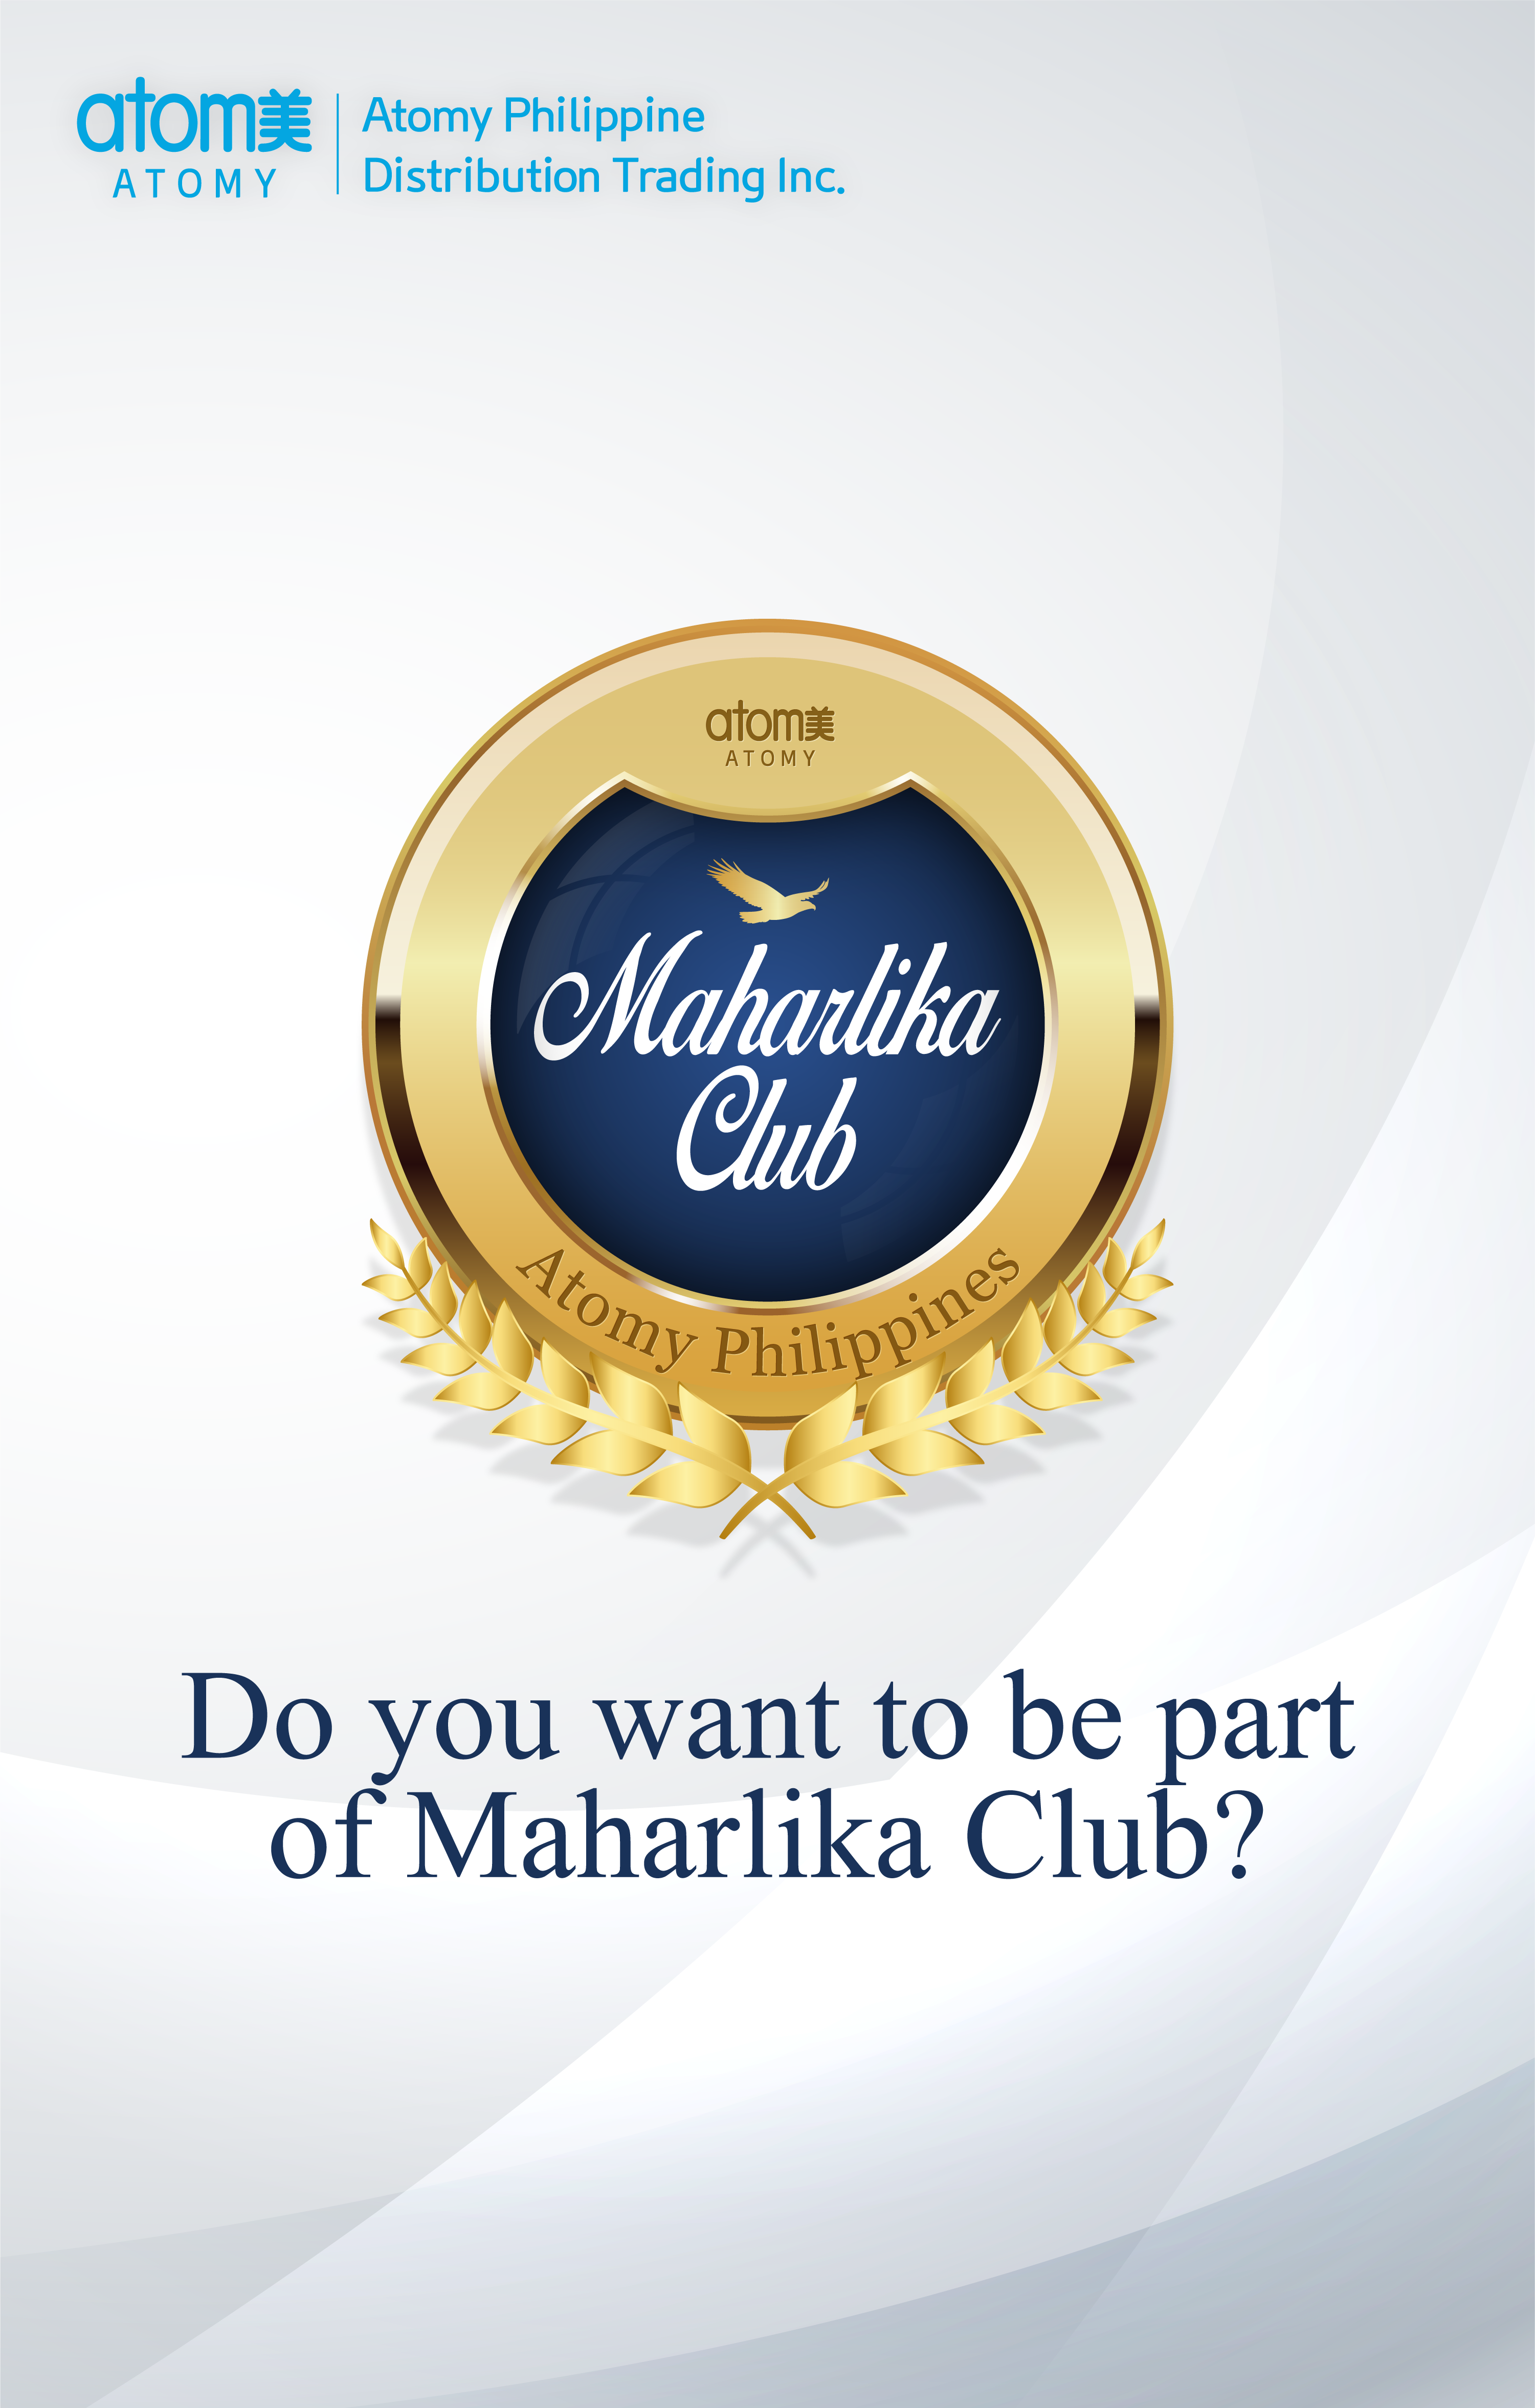 Special Announcement - Maharlika Club